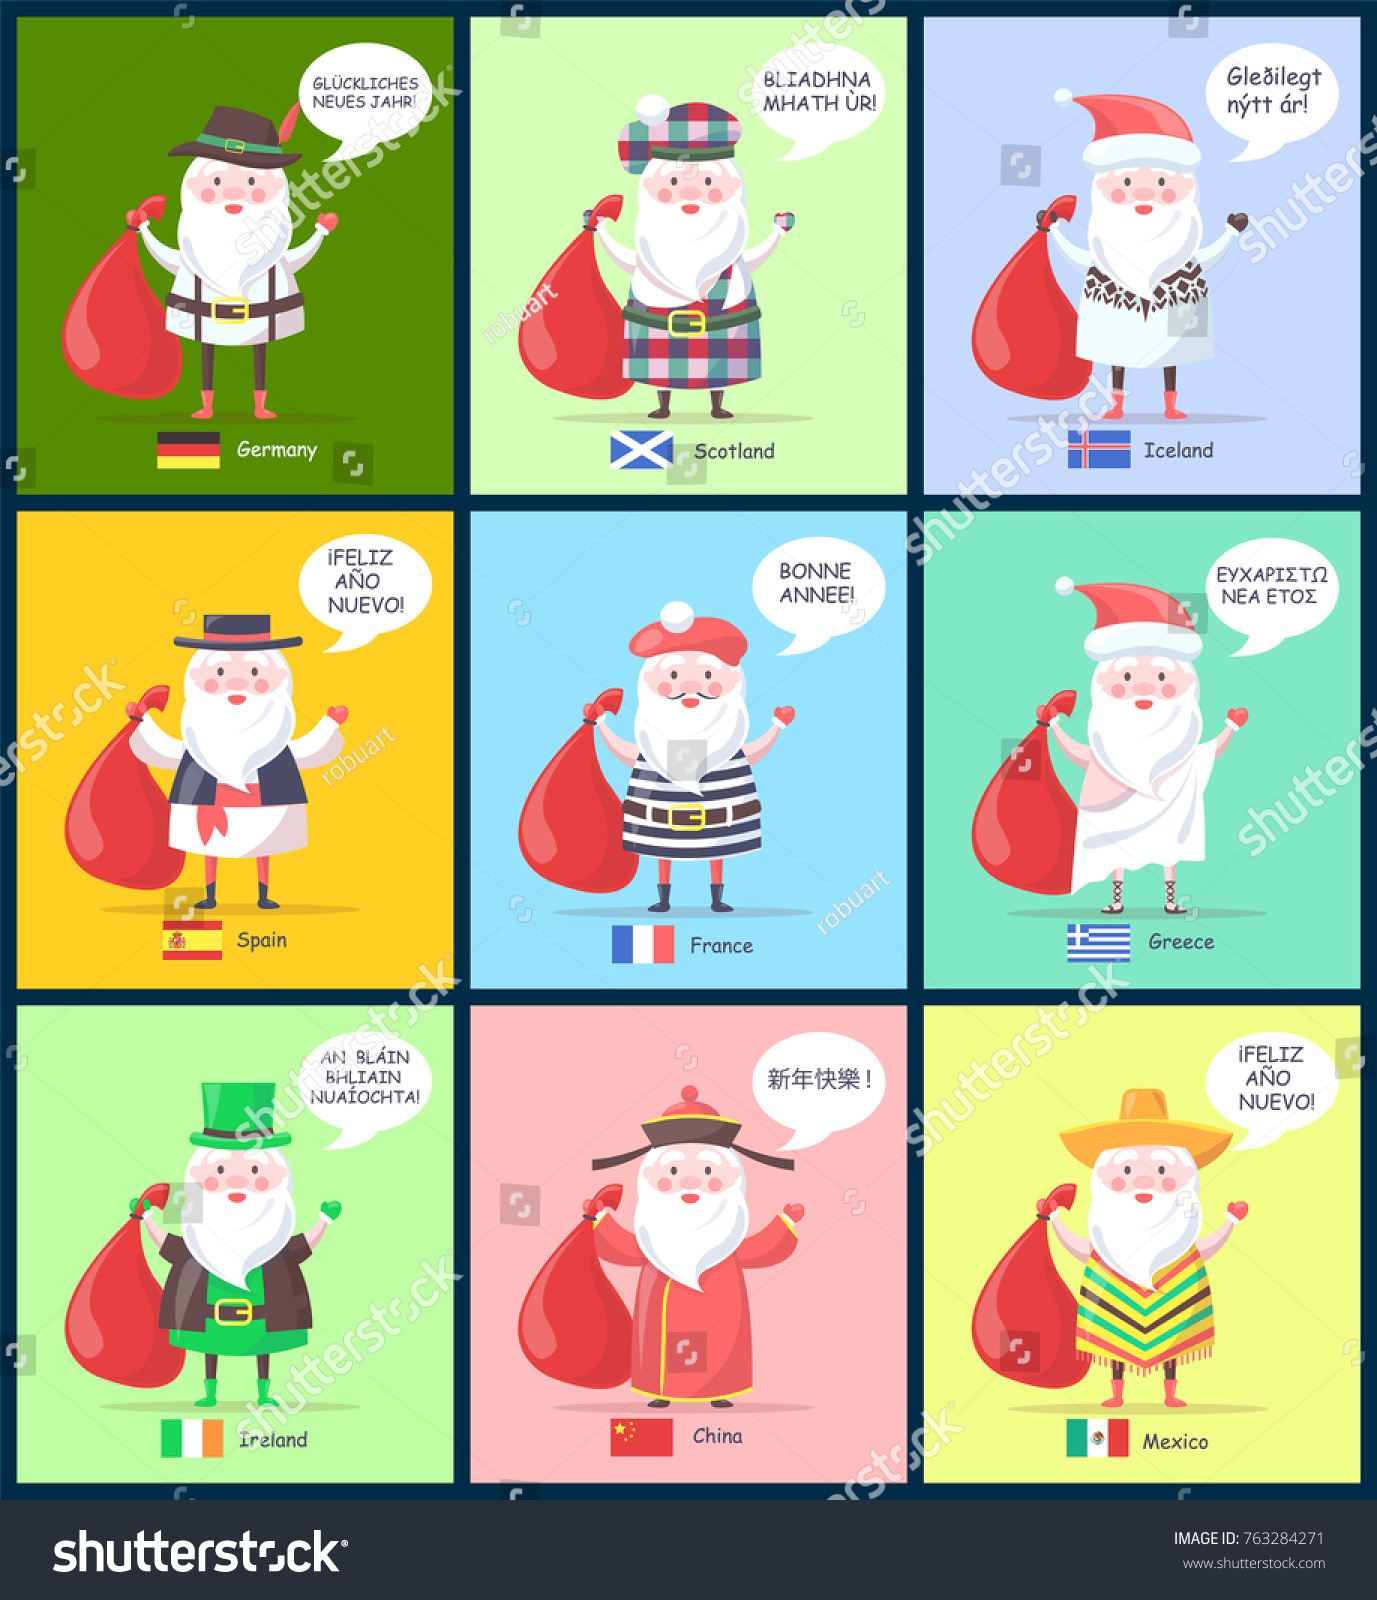 germany and scotland iceland and spain santa clauses with greeting of happy new year